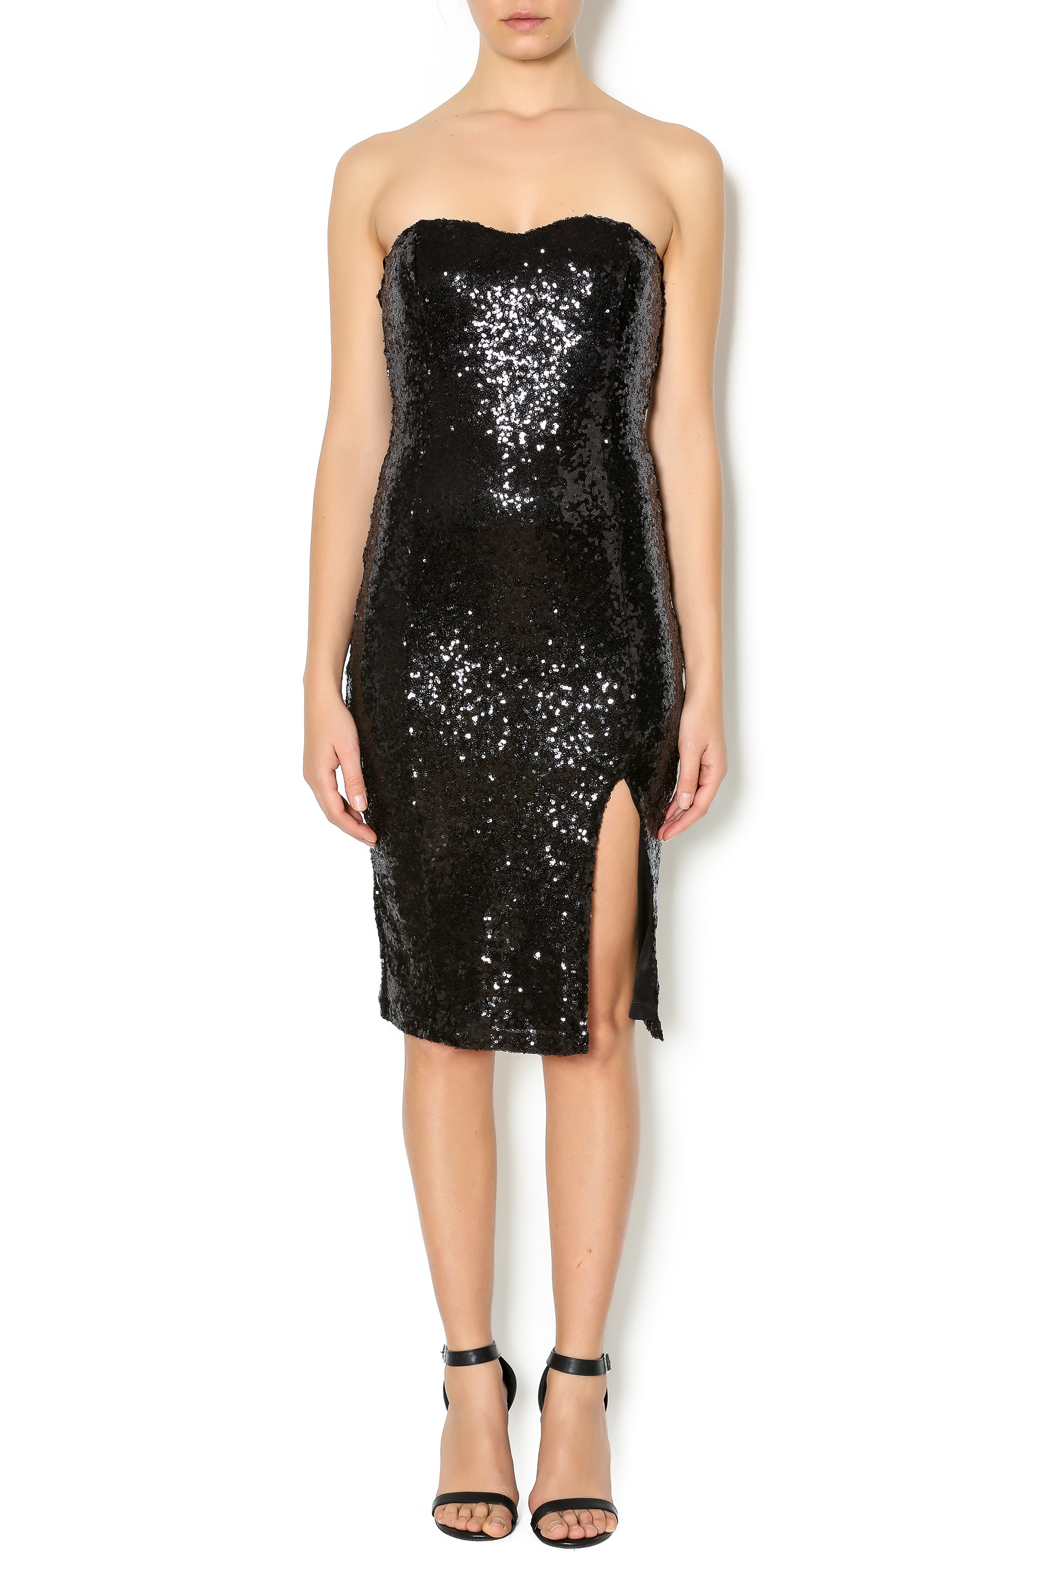 77a0d03c6ebef Lovely Day Strapless Sequin Dress from New York by Dor L Dor ...